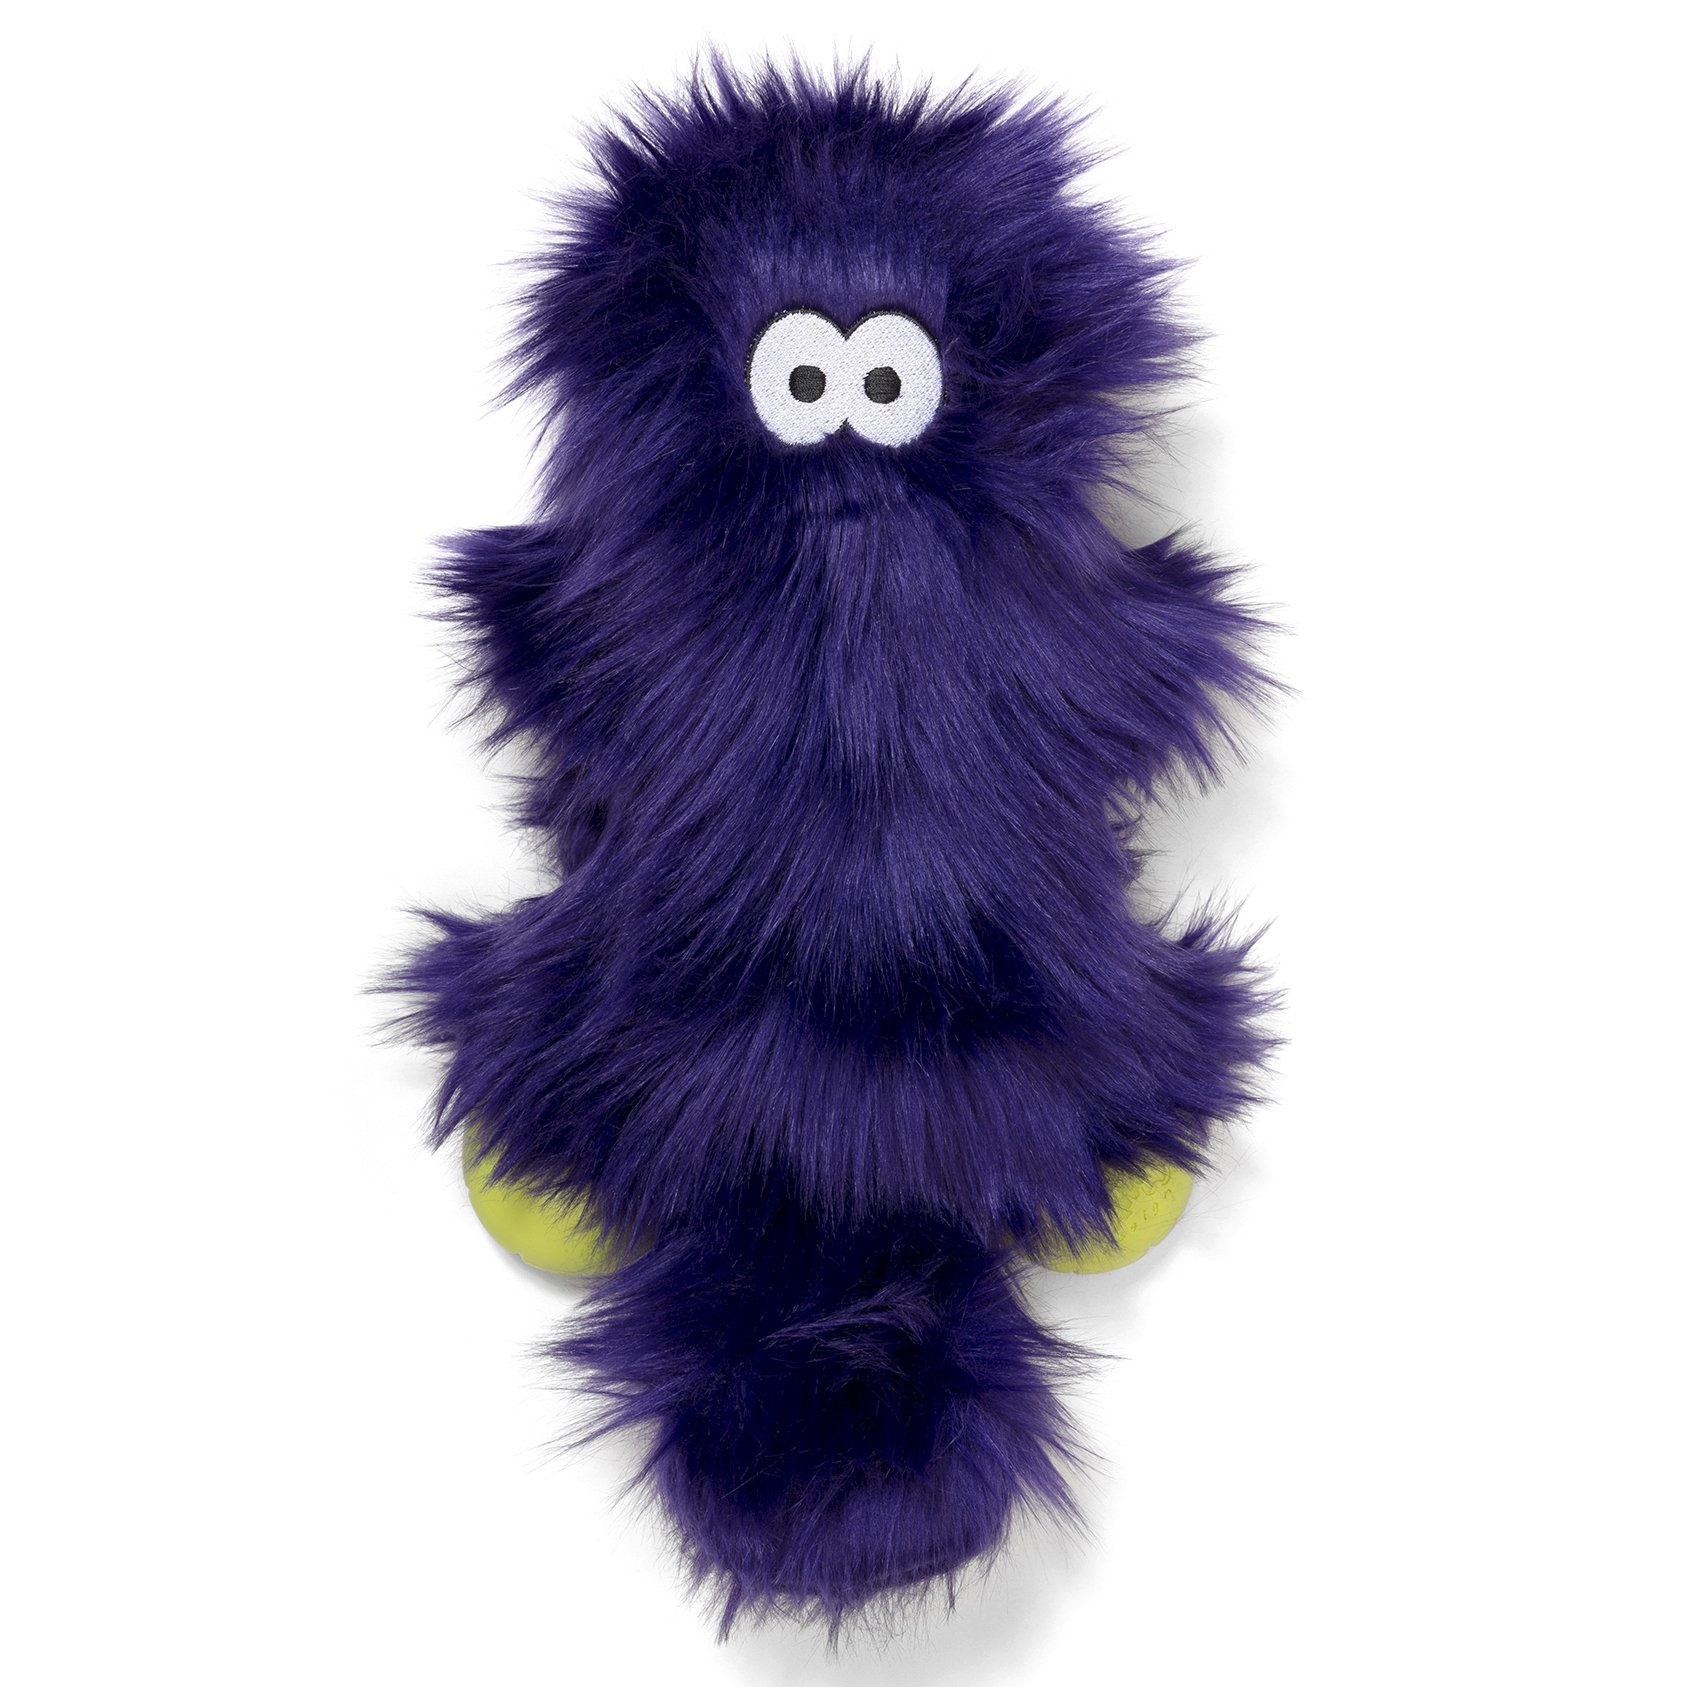 West Paw Rowdies with HardyTex and Zogoflex, Durable Plush Dog Toy for Medium to Large Dogs, Sanders, Purple Fur